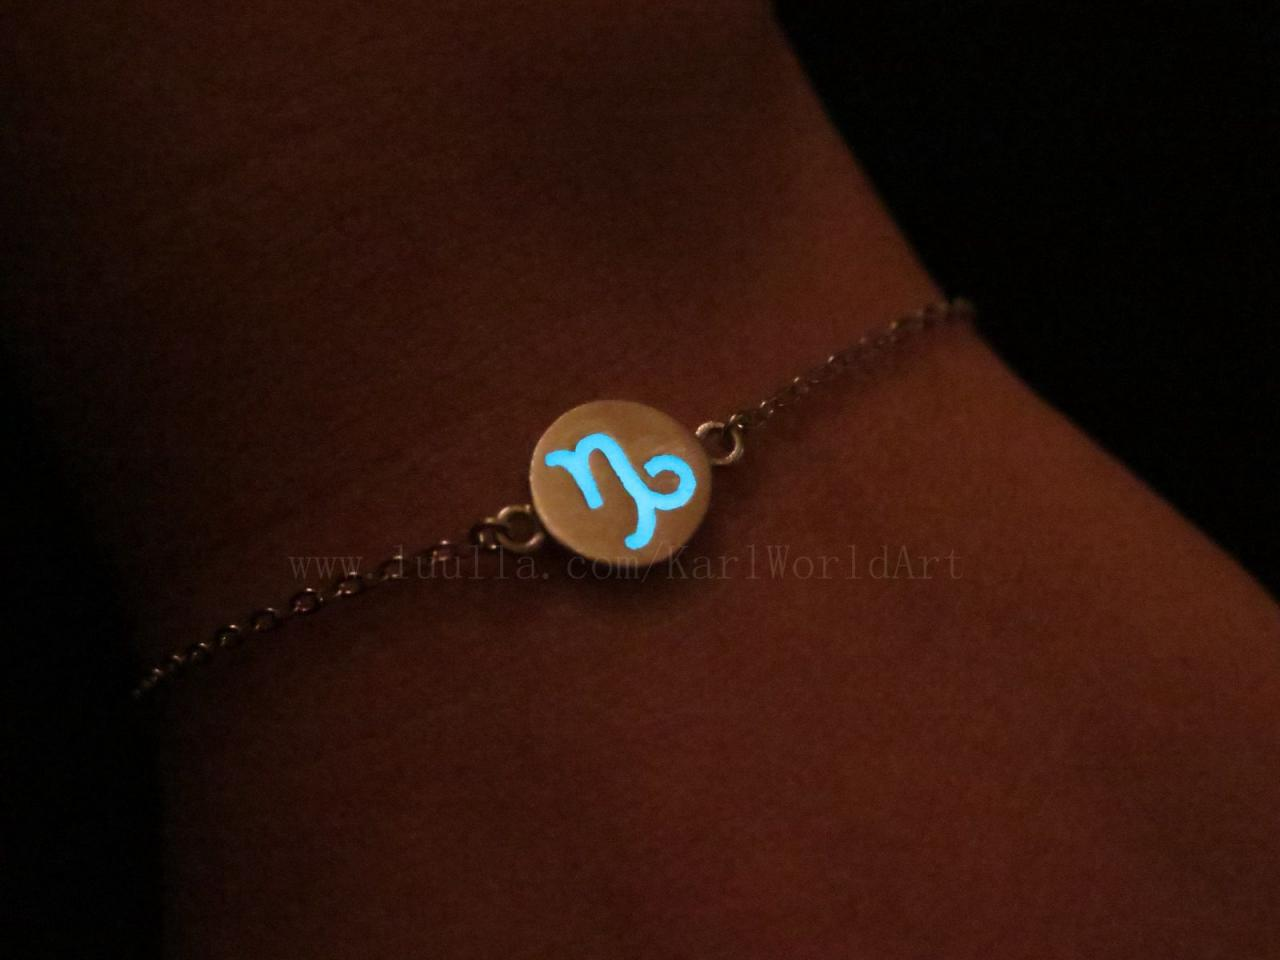 Free Shipping Capricorn Bracelets, Zodiac Sign Bracelets, Astrology Bracelets, Constellation Bracelets, Sterling Silver Bracelets, Glow in the dark